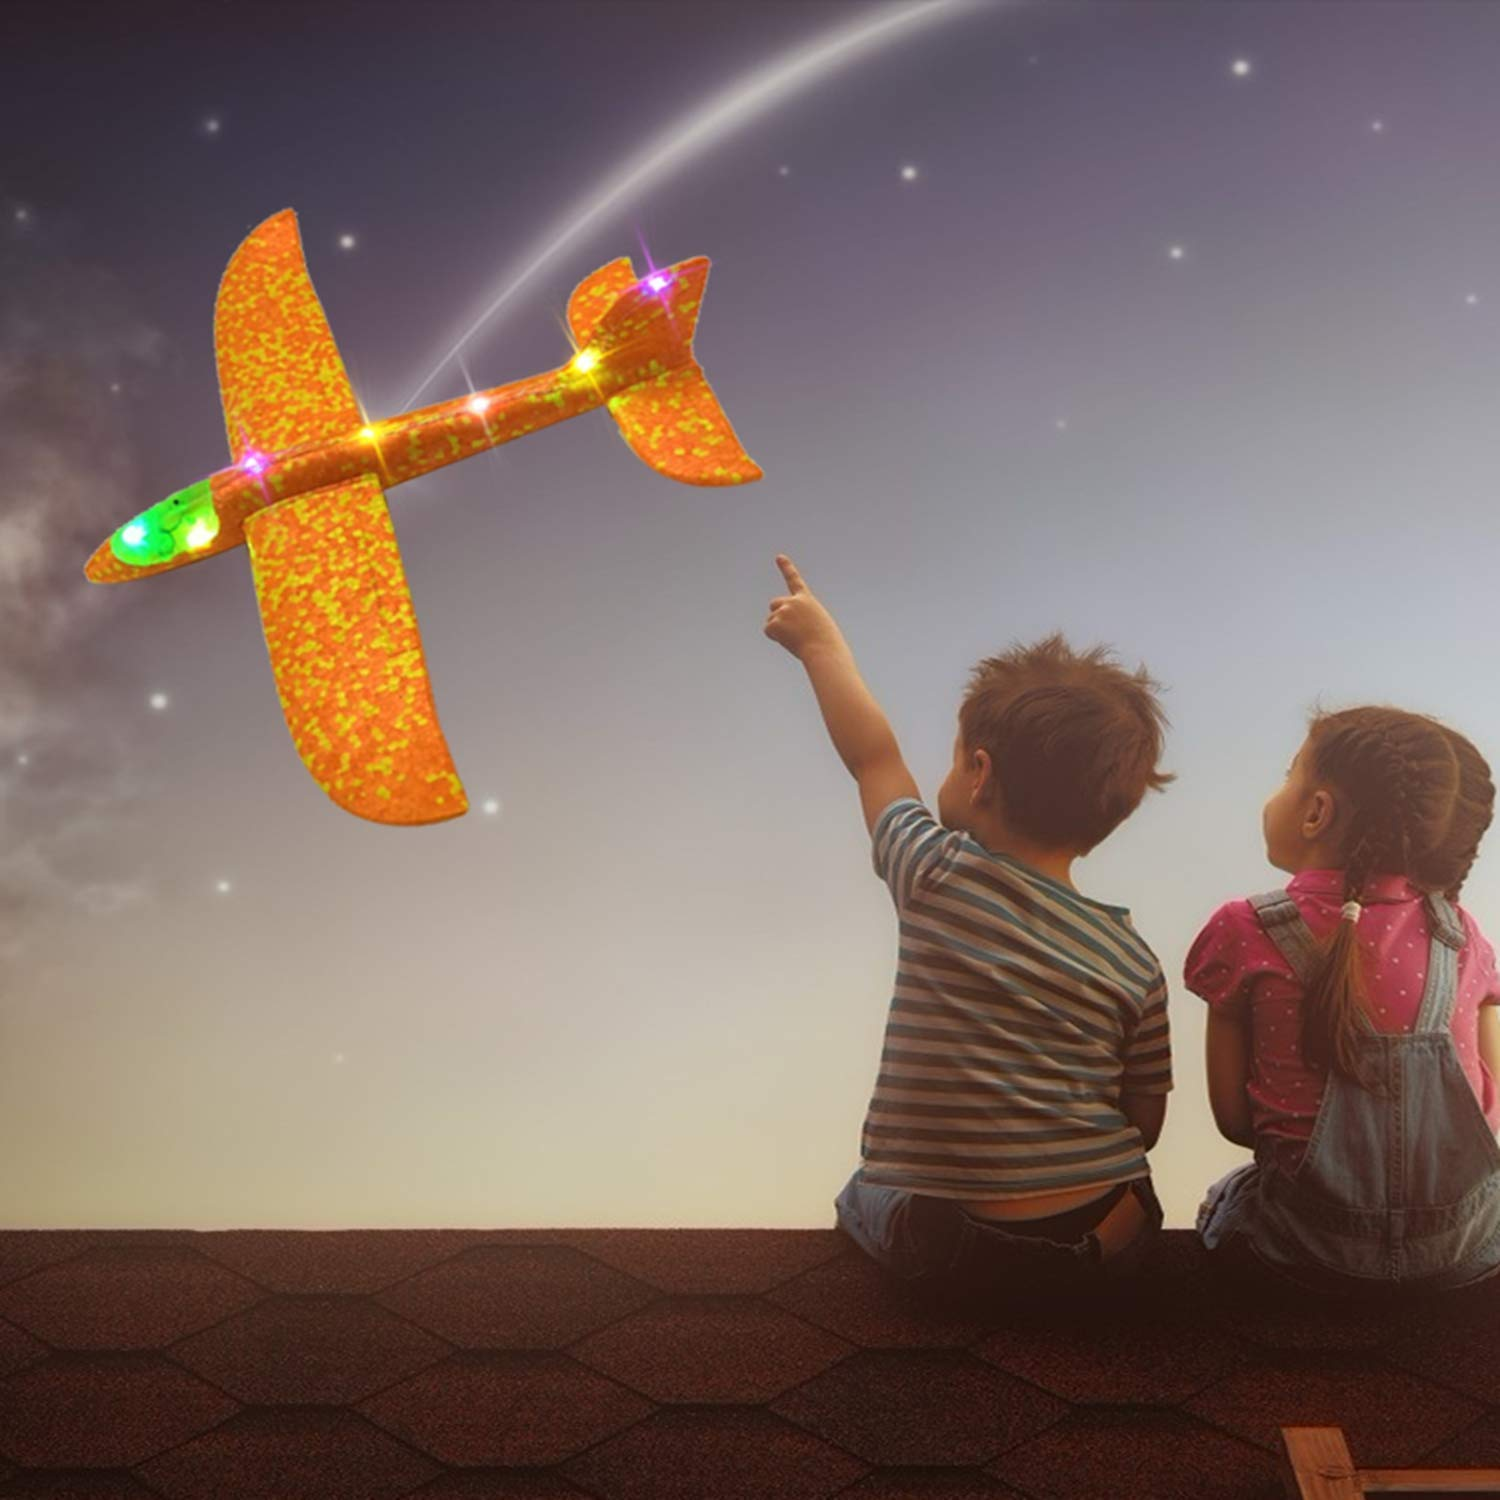 4 Pack Foam Airplane Glider Throwing Plane, 2P 14 Inch LED Light Up Flying Aircraft Jet+2P LED Light Up Toy Parachute Free Throwing Outdoor Sports Flying Toys Gift for Kids Toddlers Teens by Aufind (Image #7)